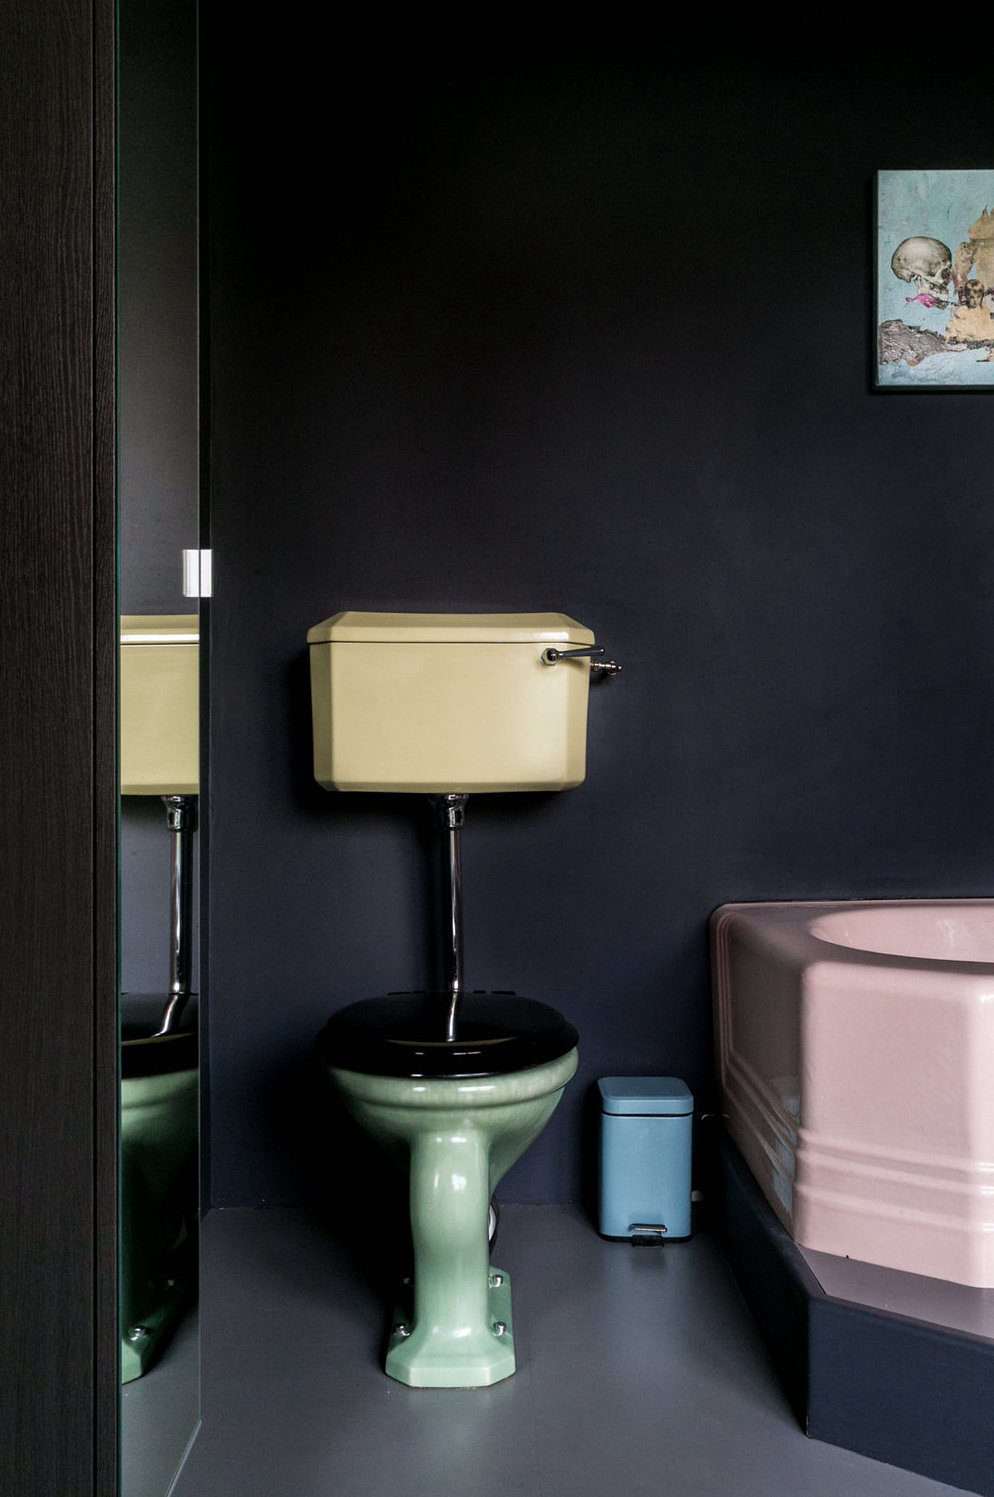 In his Yard House project, Jonathan Tuckey used pastel fixtures against a dark, moody